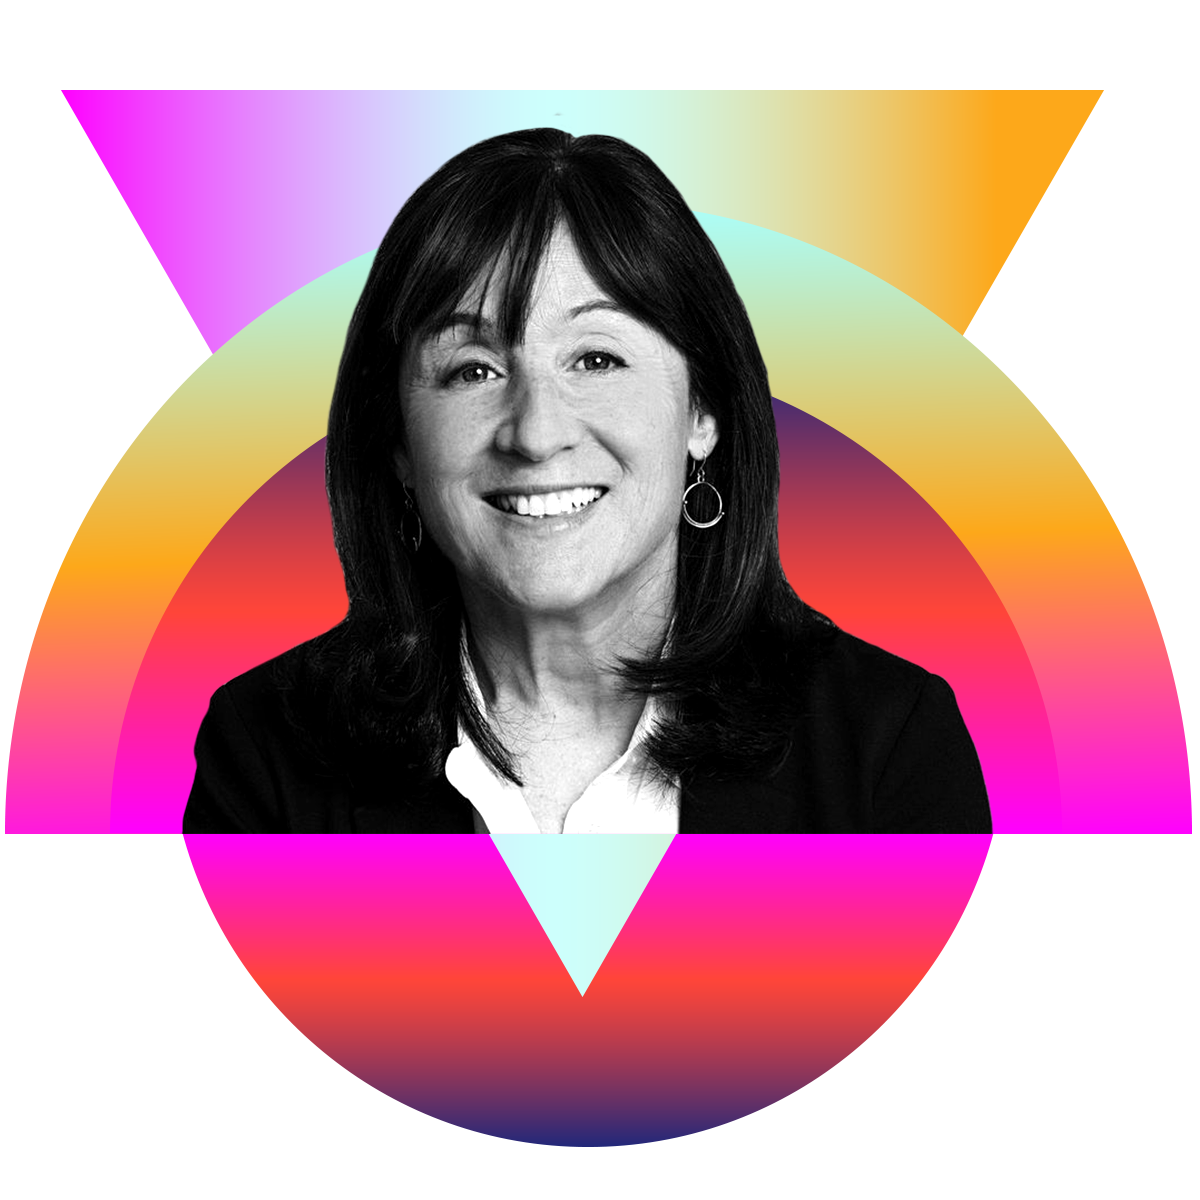 Photo illustration of Jane Mayer in black and white surrounded by colored gradients